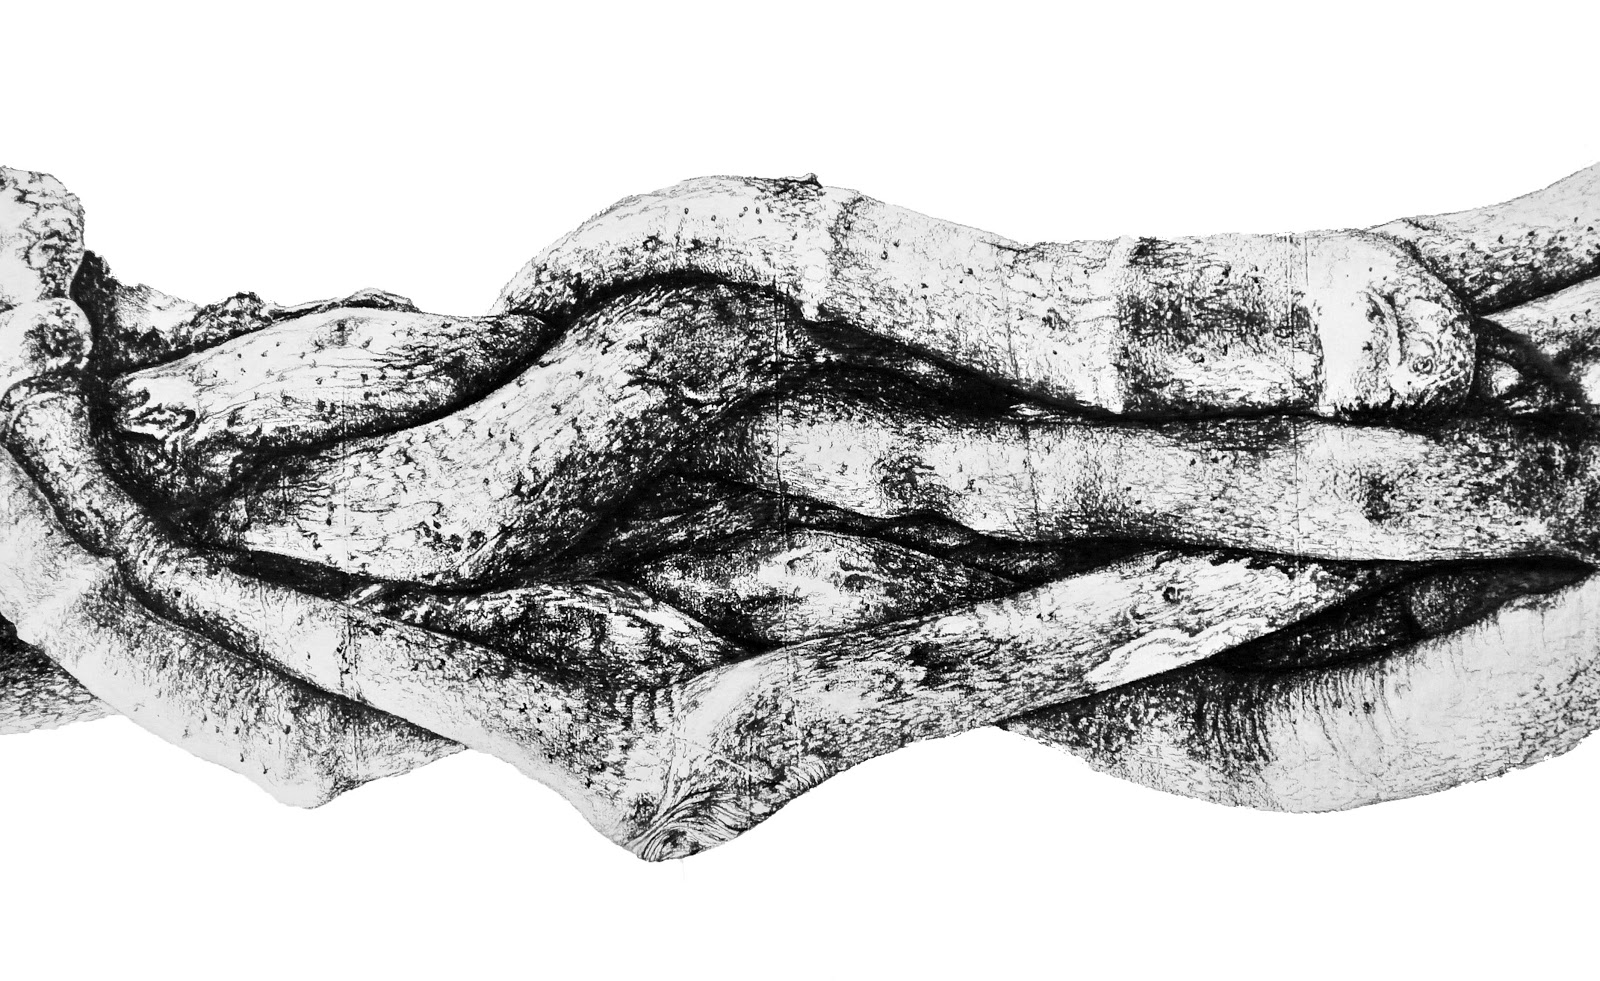 Untitled (Sin título), 2013 - From the series Roots